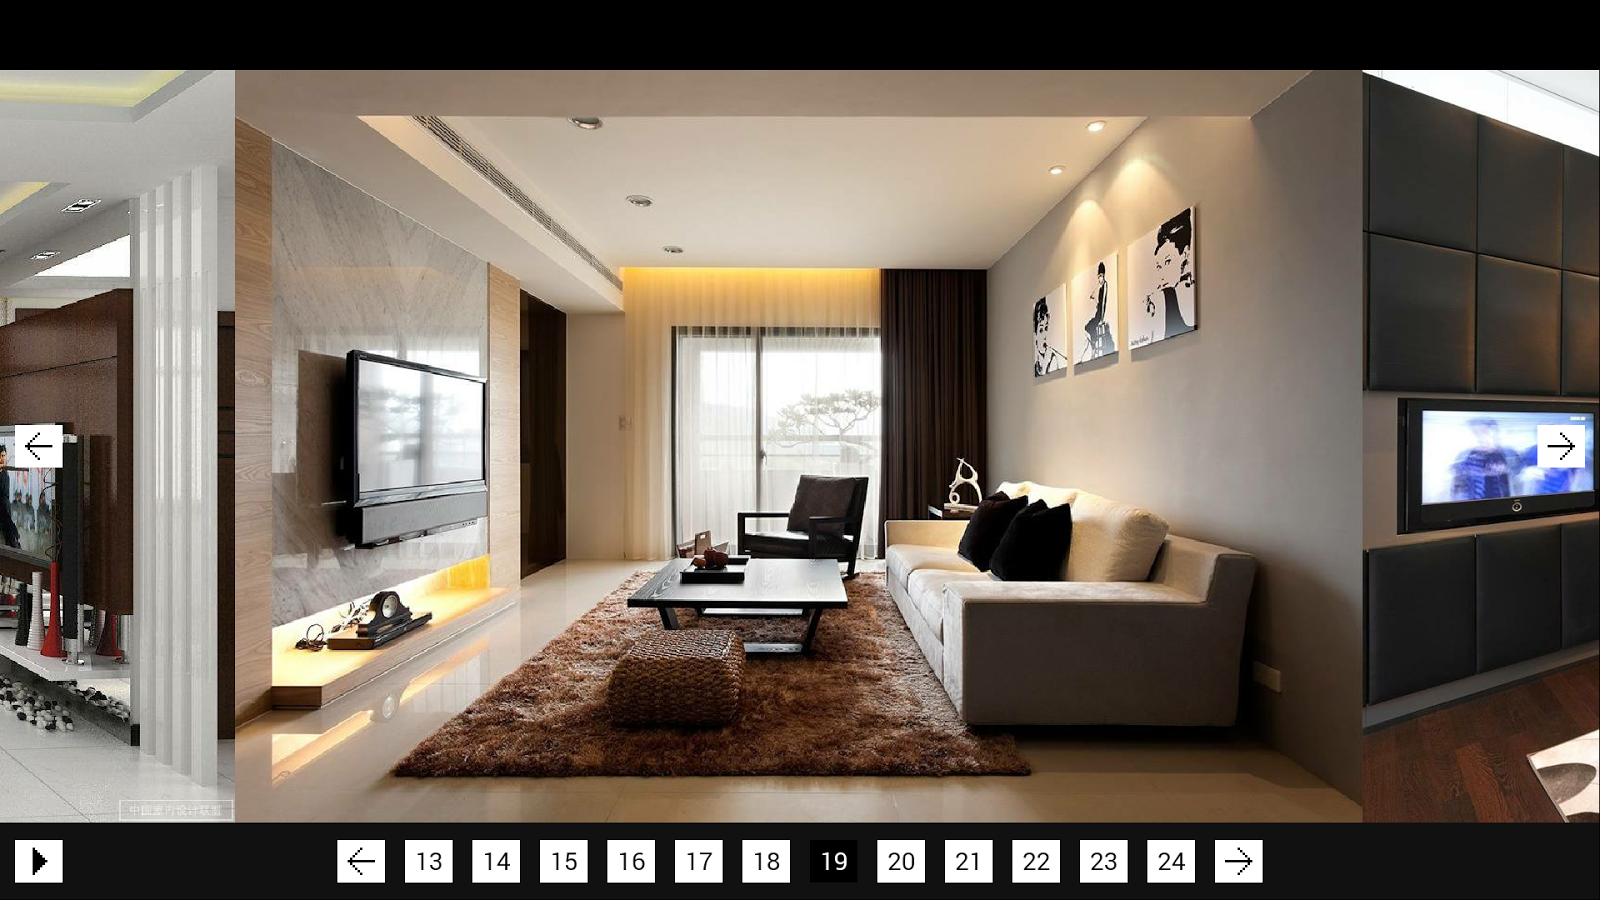 Home interior design android apps on google play for Home interior